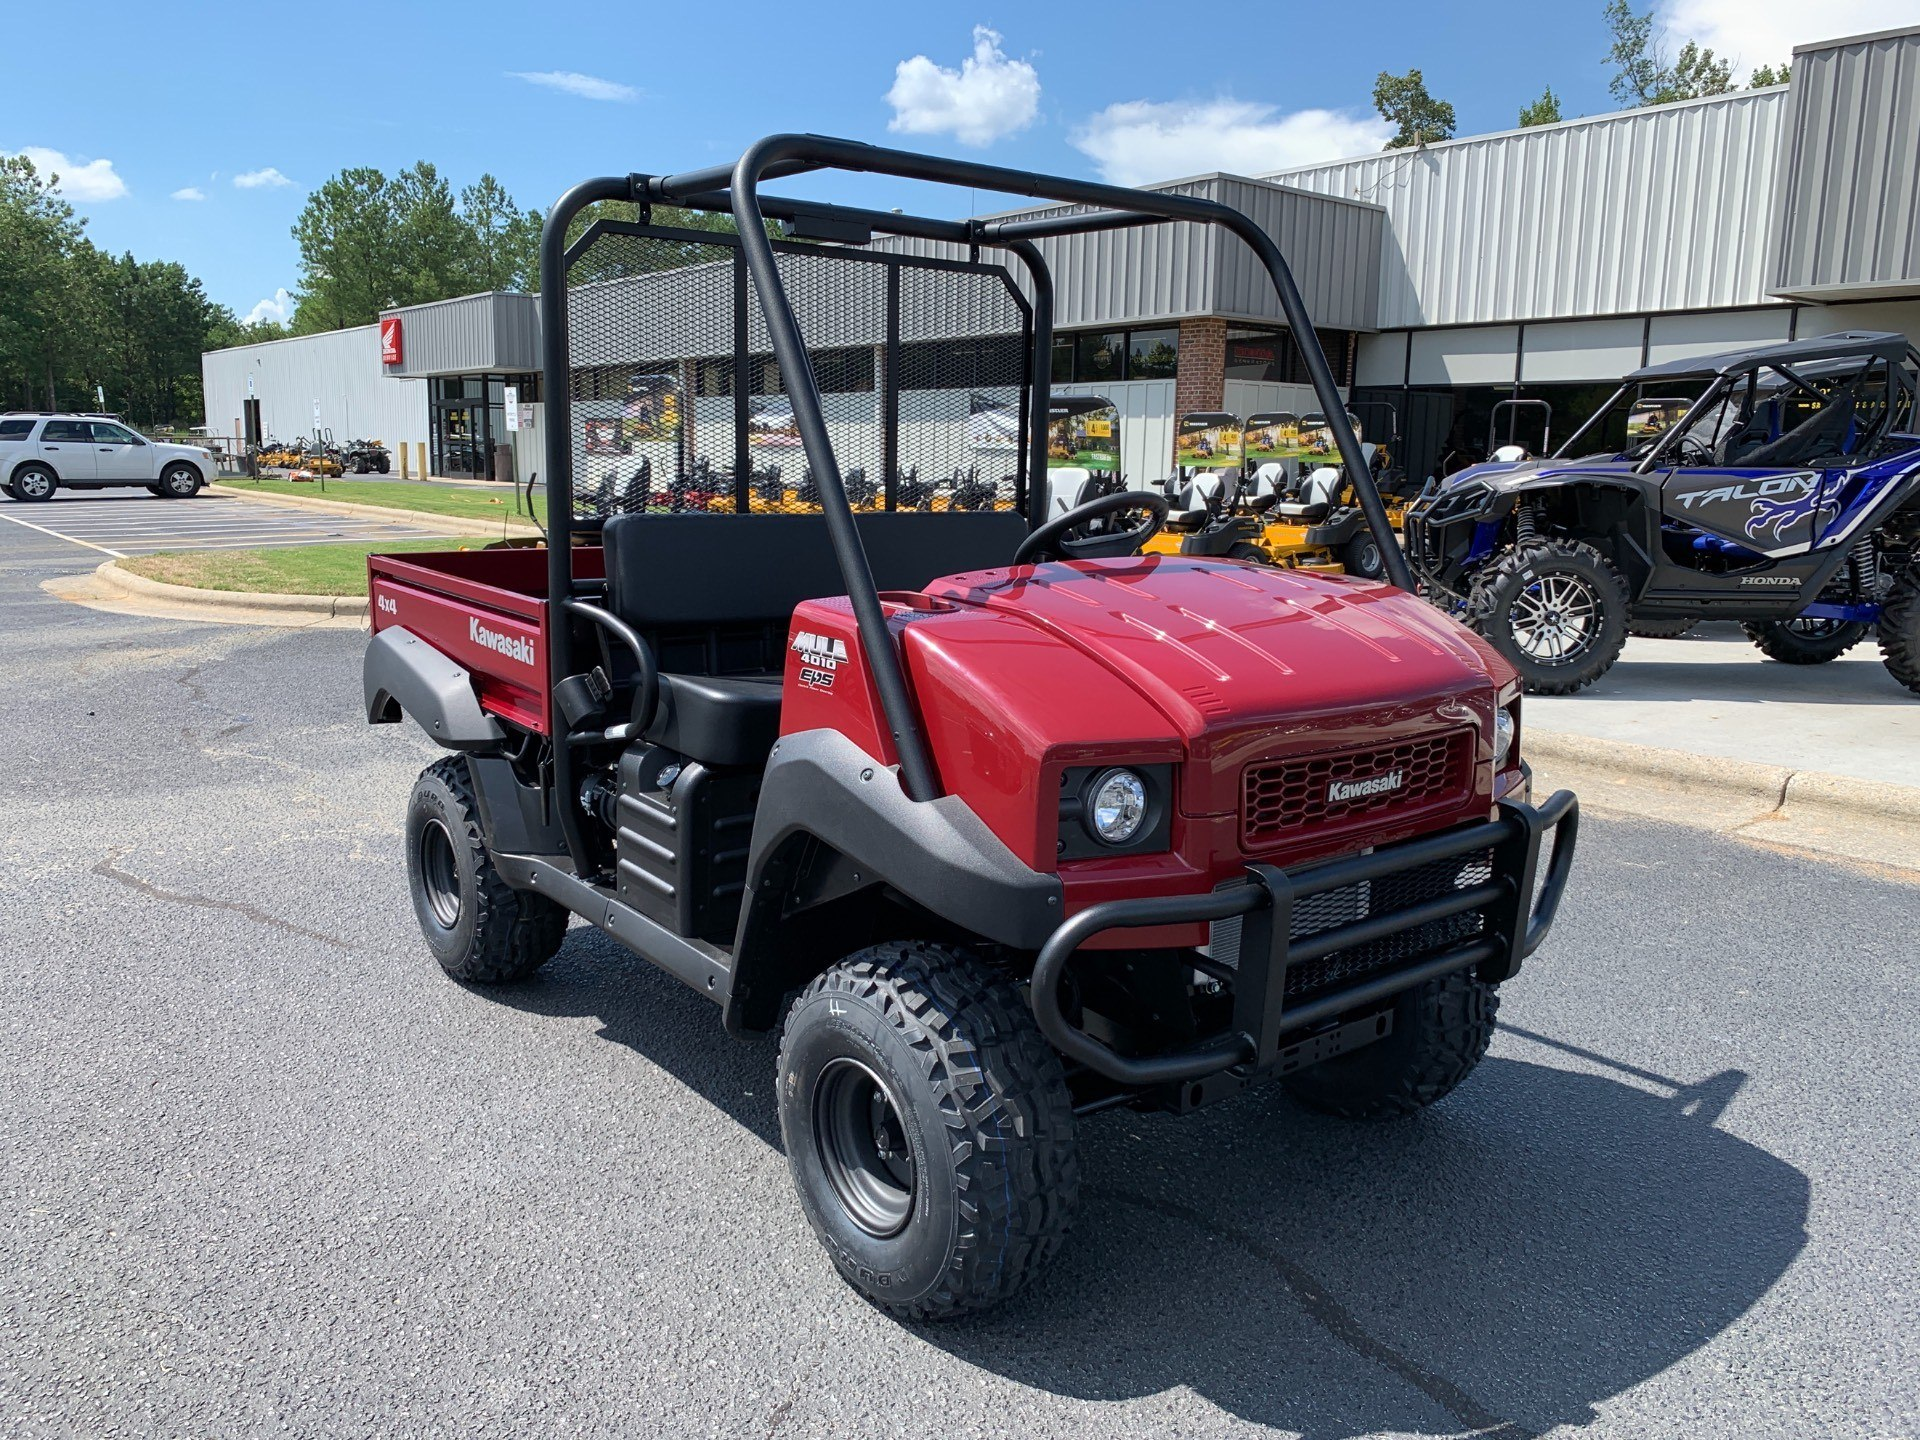 2020 Kawasaki Mule 4010 4x4 in Greenville, North Carolina - Photo 3